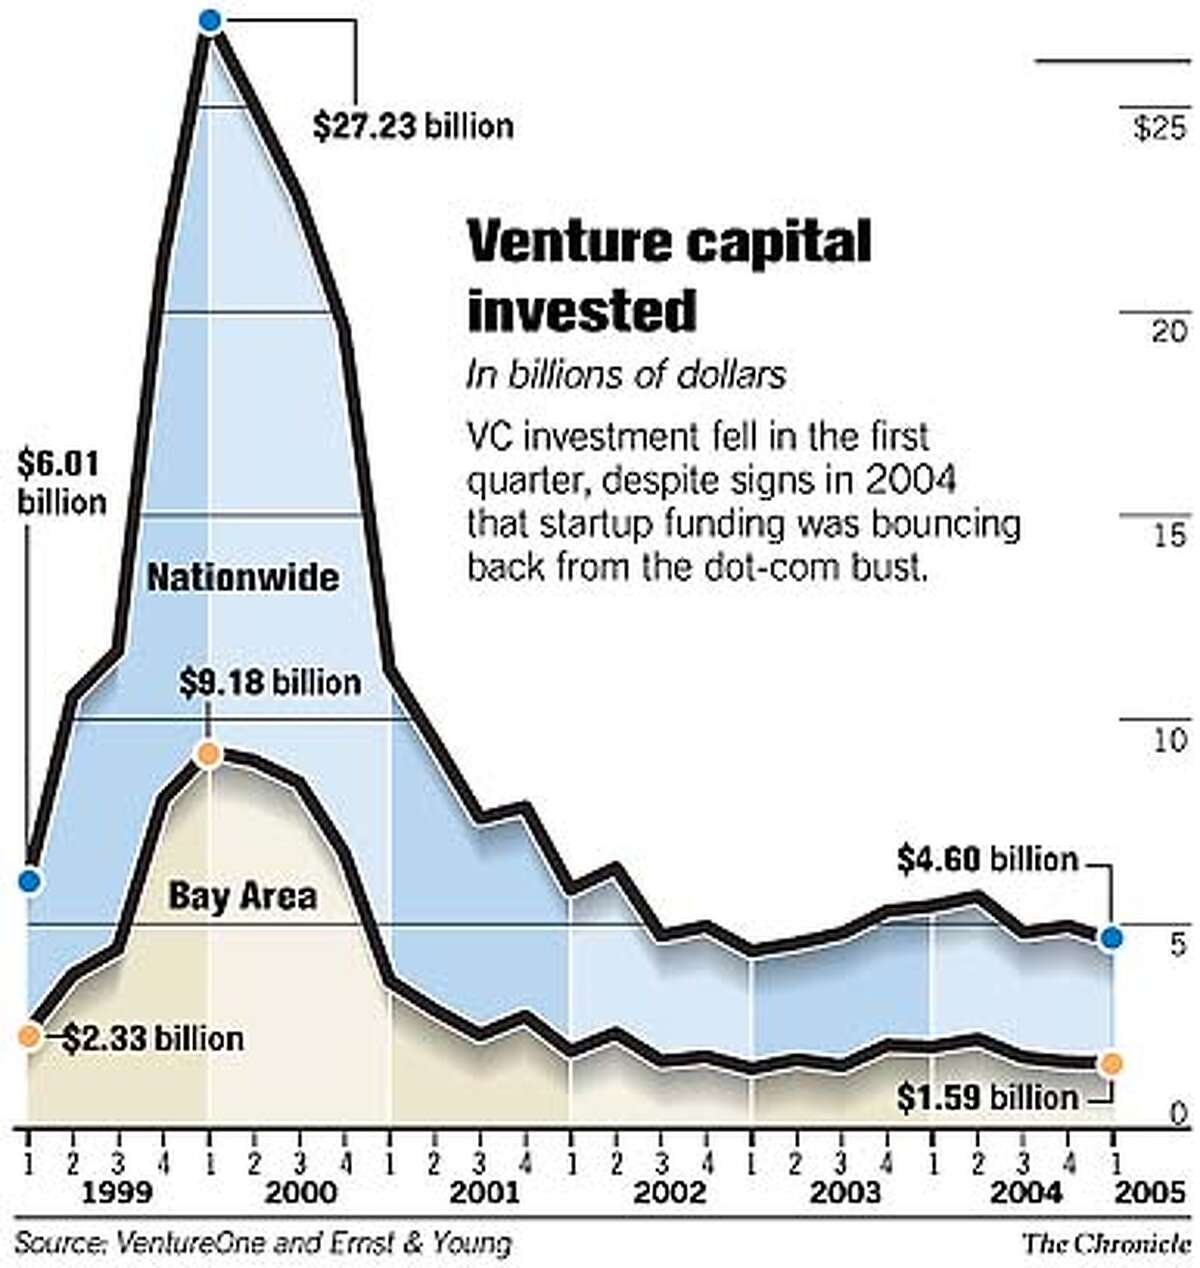 Venture Capital Invested. Chronicle Graphic